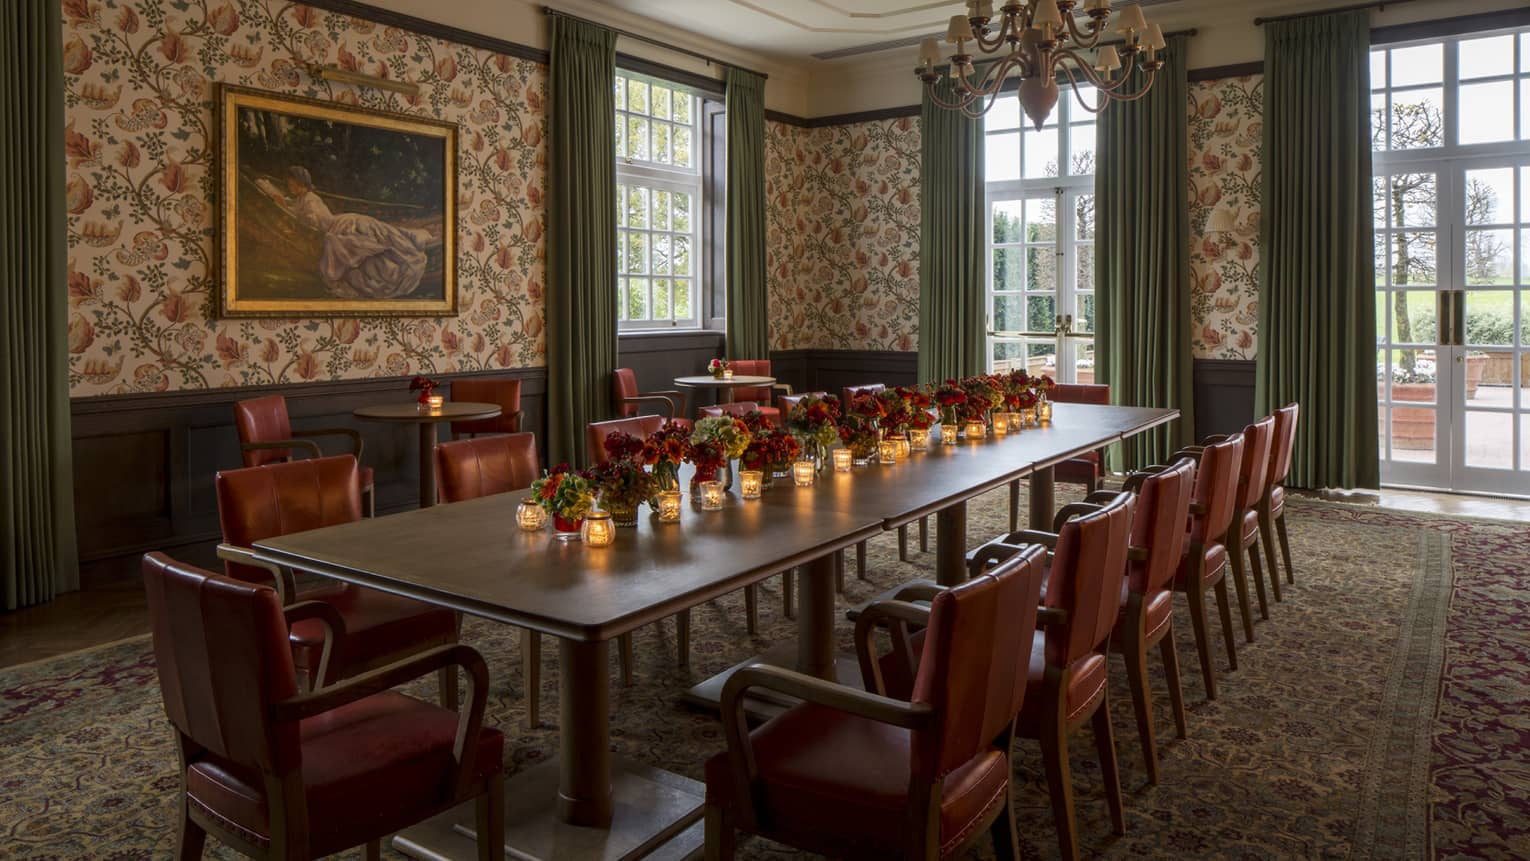 Fox Hollow private dining room, table with candles, red flowers and leather chairs